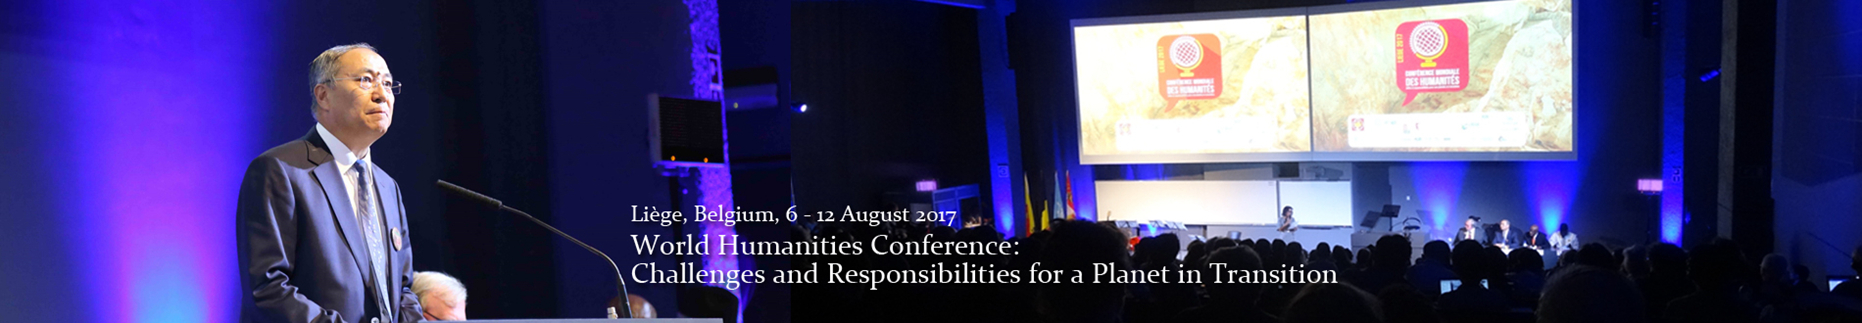 World Humanities Conference: Challenges and Responsibilities for a Planet in Transition  http://www.cipsh.net/web/news-186.htm